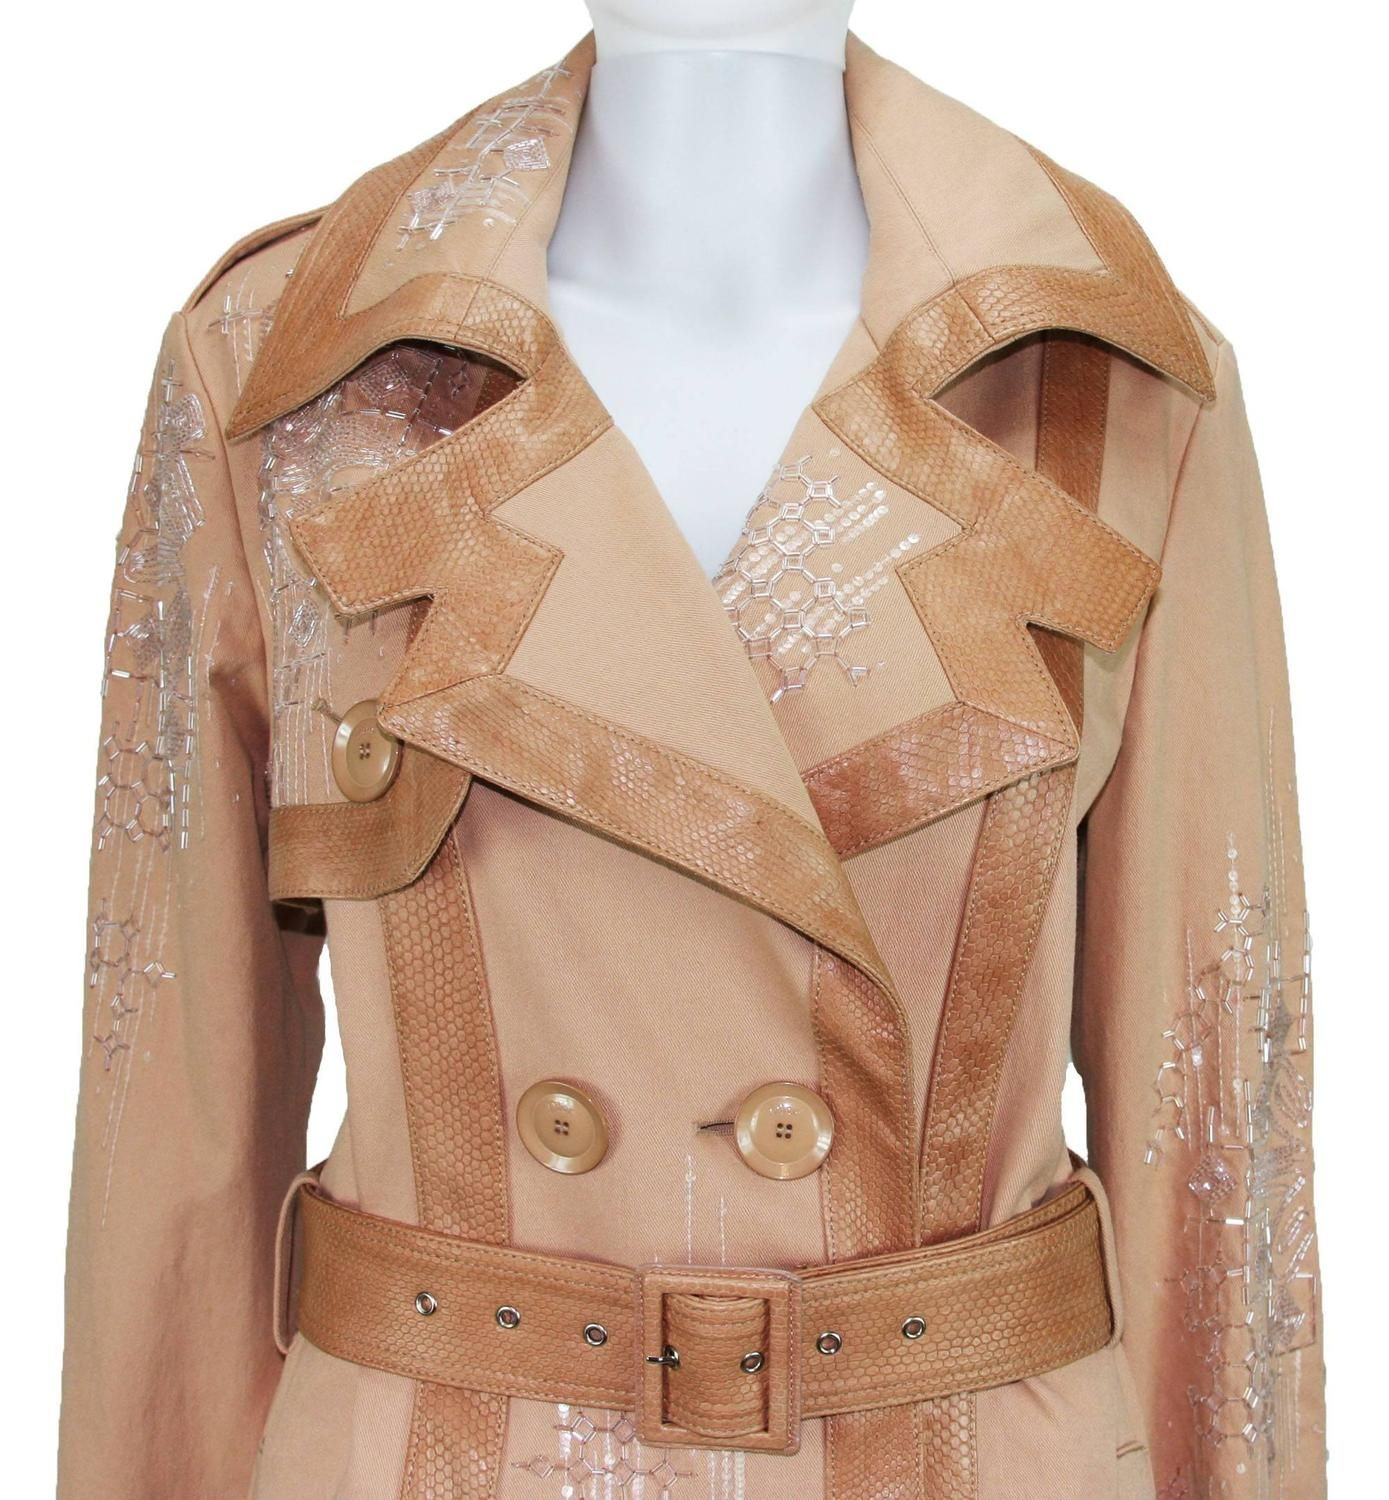 Christian Dior Snake Beads Embellished Trench Coat Fr.40 - US 8 | From a collection of rare vintage coats and outerwear at https://www.1stdibs.com/fashion/clothing/coats-outerwear/